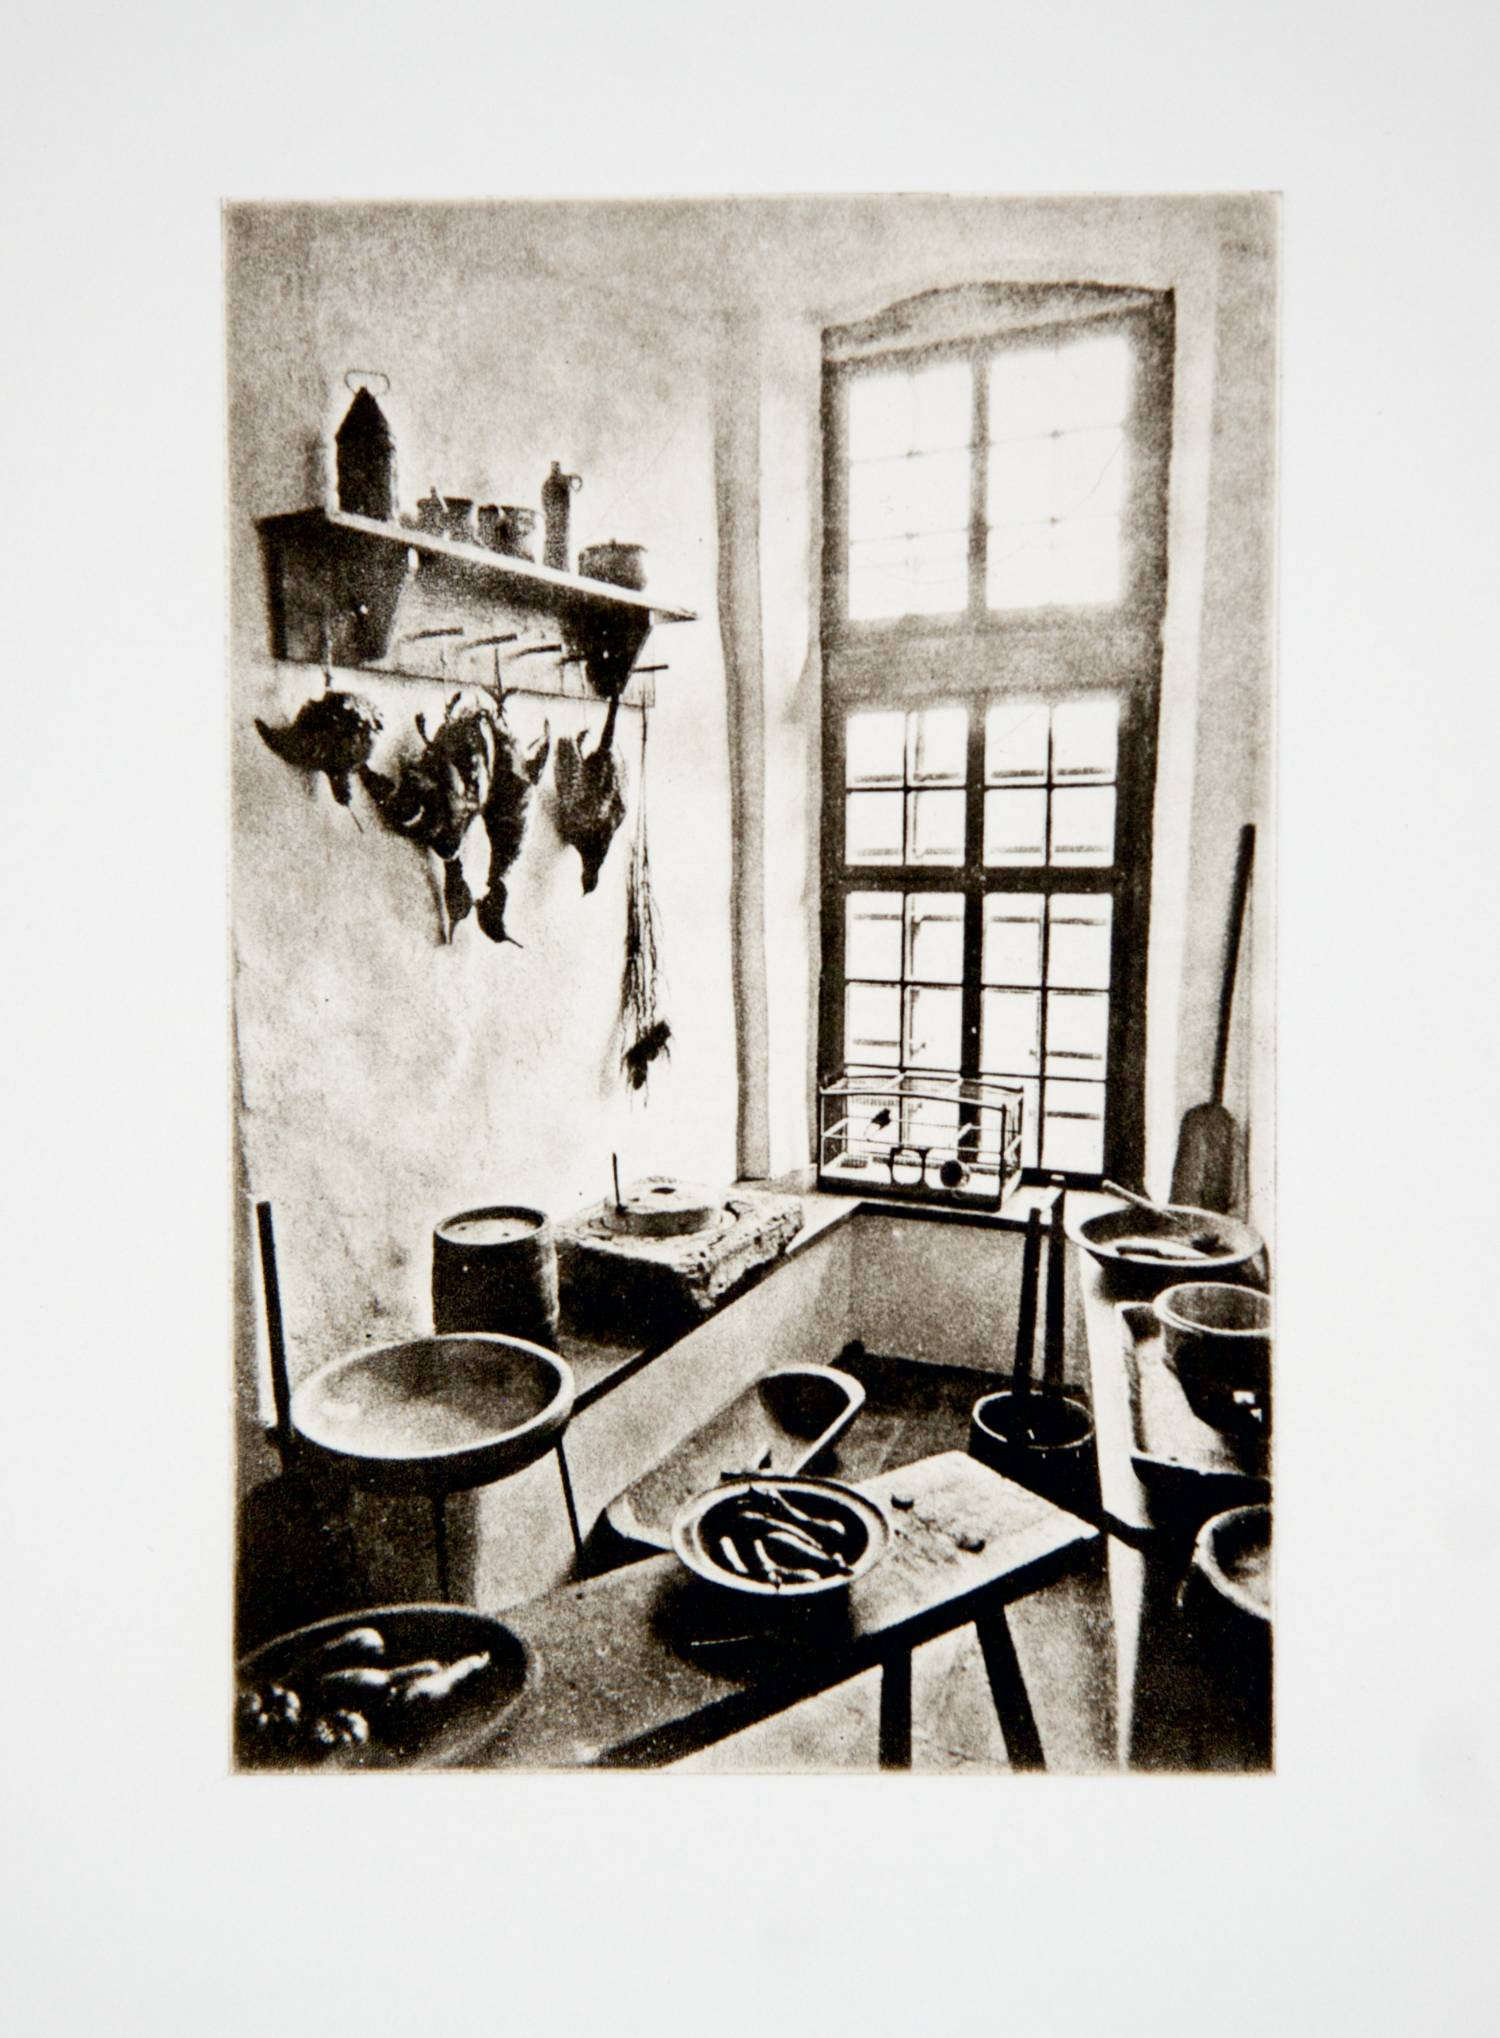 Kitchen (Marksburg Castle, Germany)